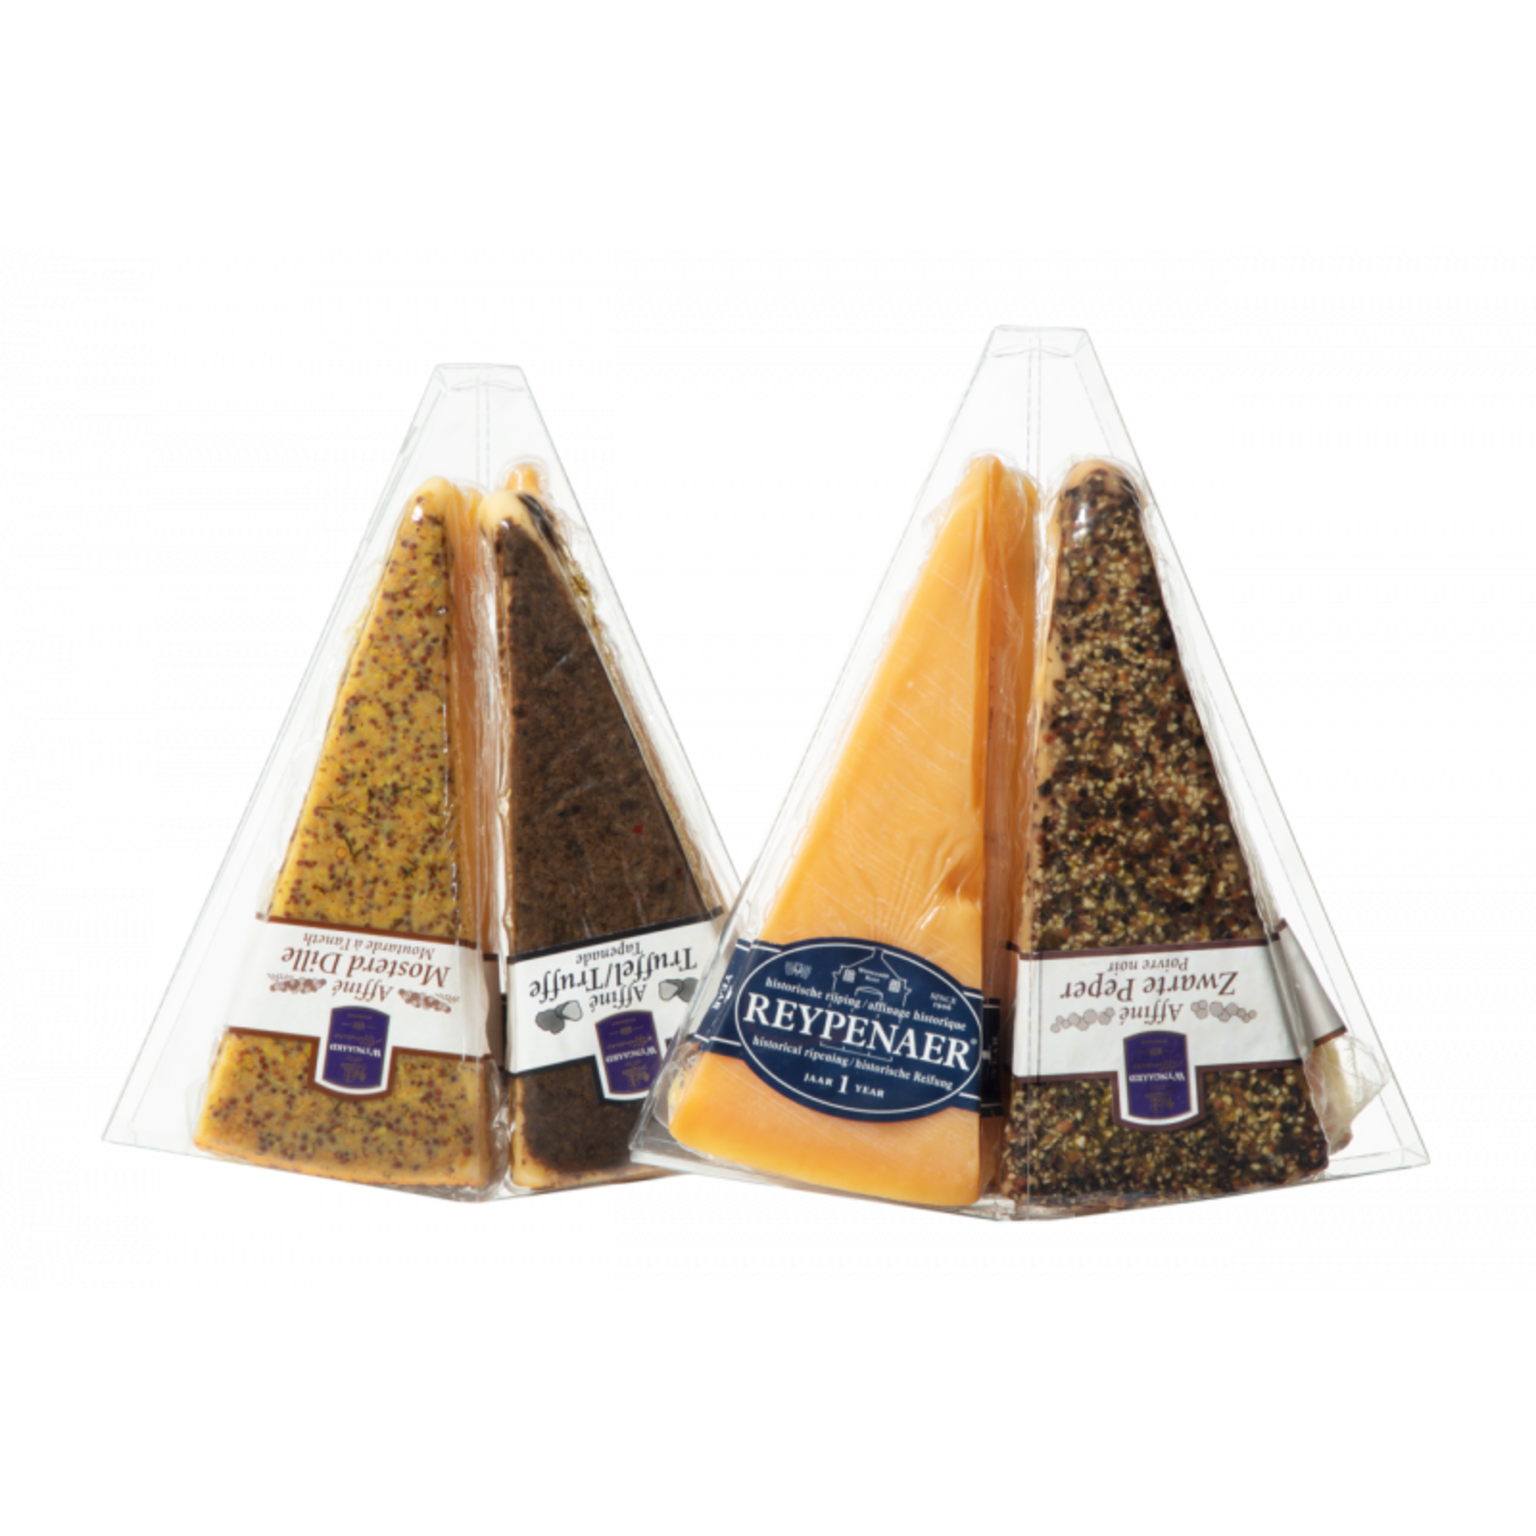 Reypenaer cheese gift